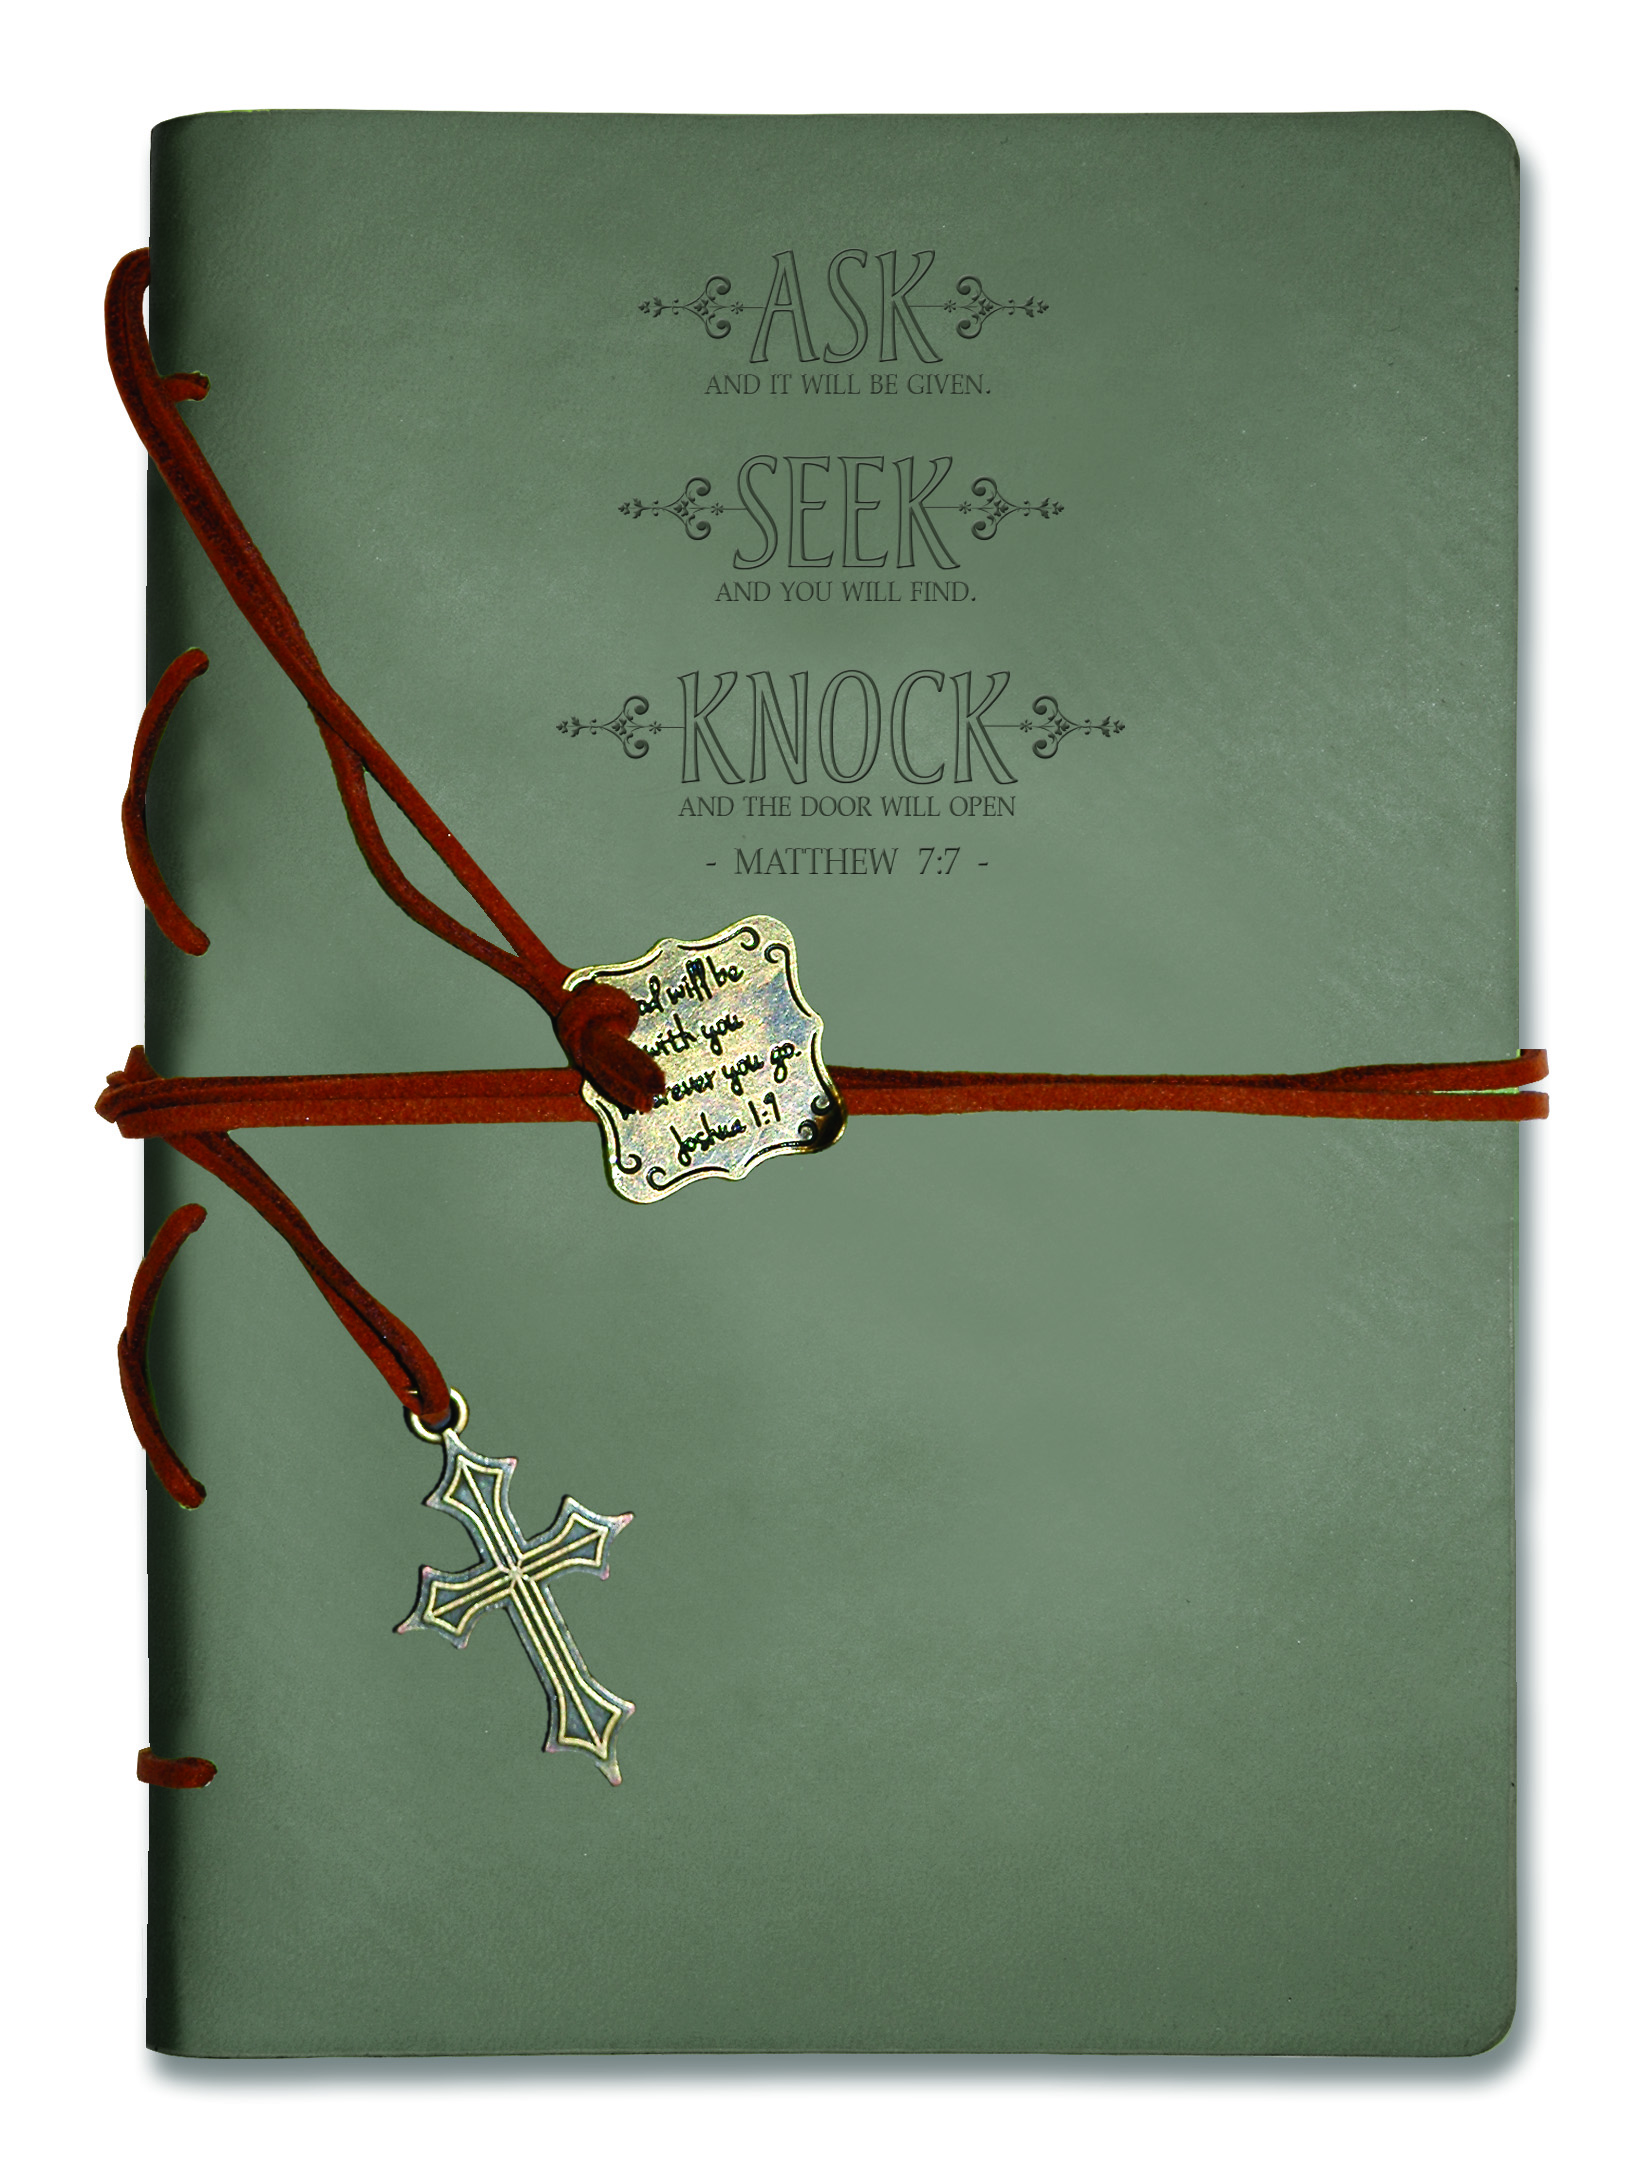 ASK SEEK JOURNAL WITH WRAP AND BOOKMARK